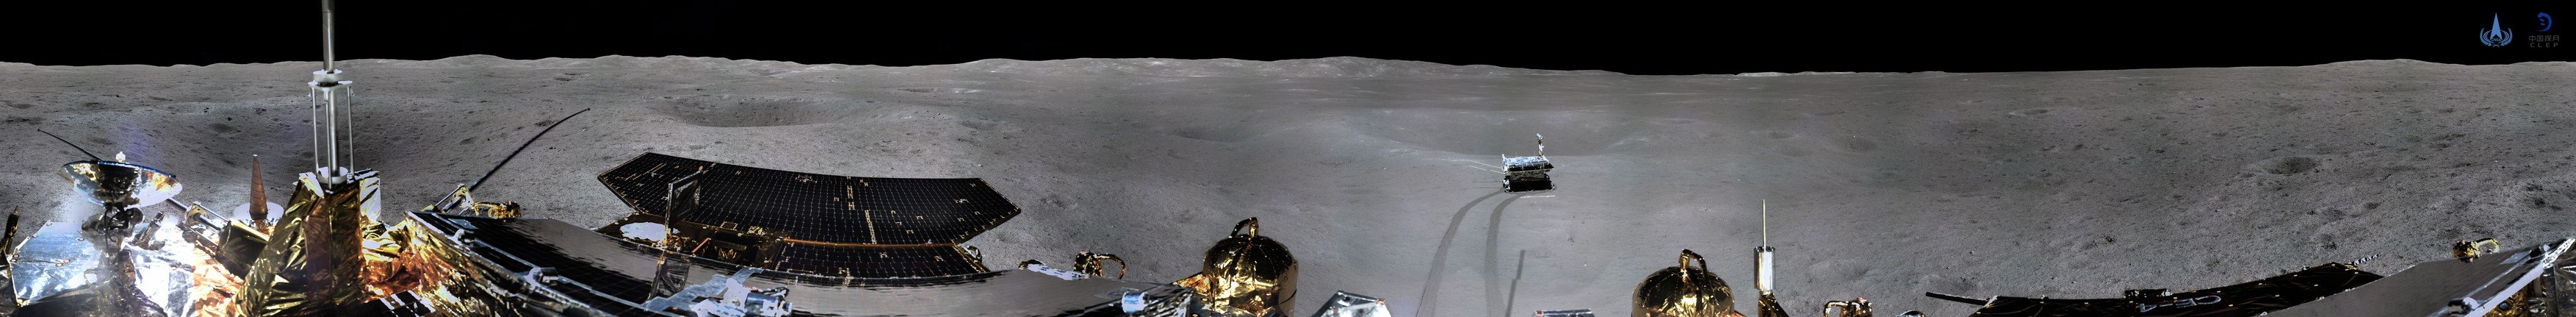 (190111) -- BEIJING, Jan. 11, 2019  -- The China National Space Administration on Jan. 11, 2019 releases the 360-degree panoramic photos taken by a camera installed on China's Chang'e-4 lunar probe (cylindrical projection). China's Chang'e-4 probe took panoramic photos on the lunar surface after it successfully made the first ever soft-landing on the far side of the moon., Image: 406523797, License: Rights-managed, Restrictions: WORLDWIDE RIGHTS AVAILABLE EXCLUDING CHINA, HONG KONG ONLY. End users shall not licence, sell, transmit, or otherwise distribute any photographs represented by eyevine, to any third party. Contact eyevine for more information: Tel: +44 (0) 20 8709 8709 Ema, Model Release: no, Credit line: Profimedia, Eyevine